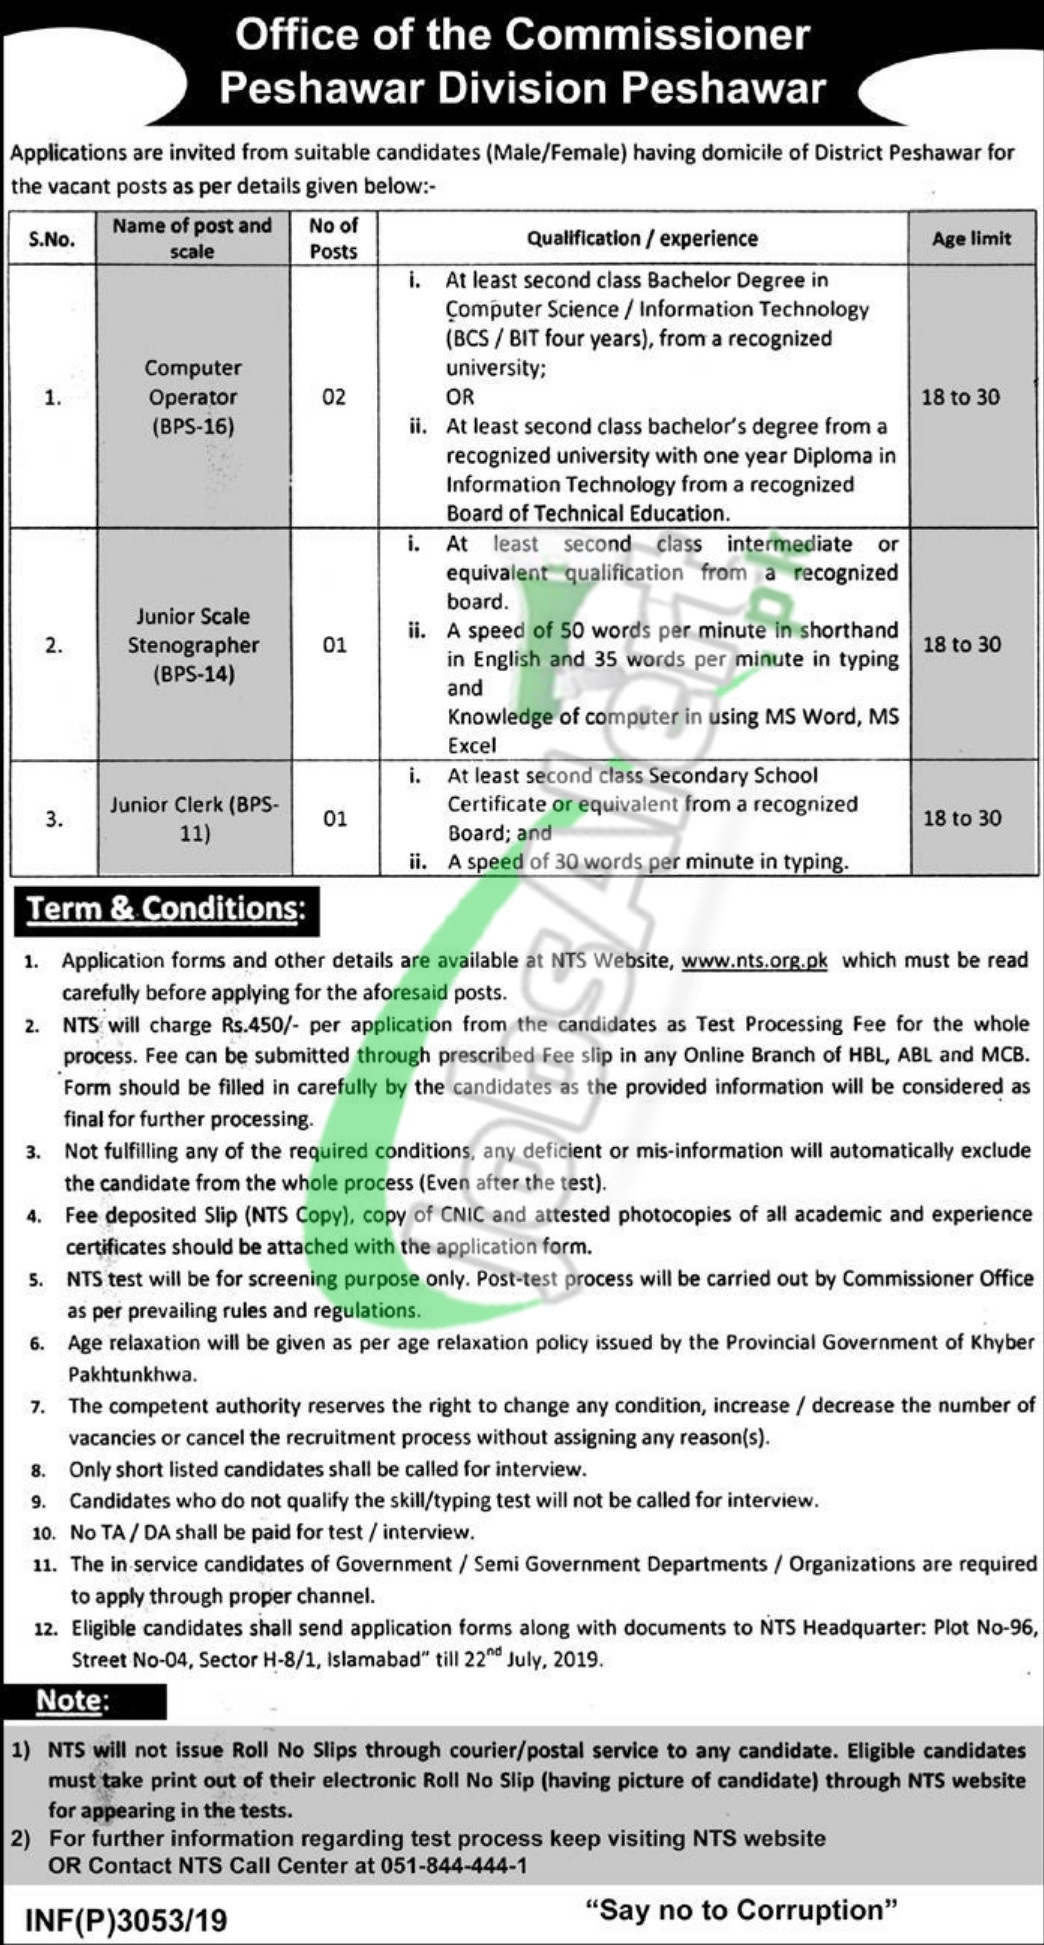 Office of the Commissioner Peshawar Jobs 2019